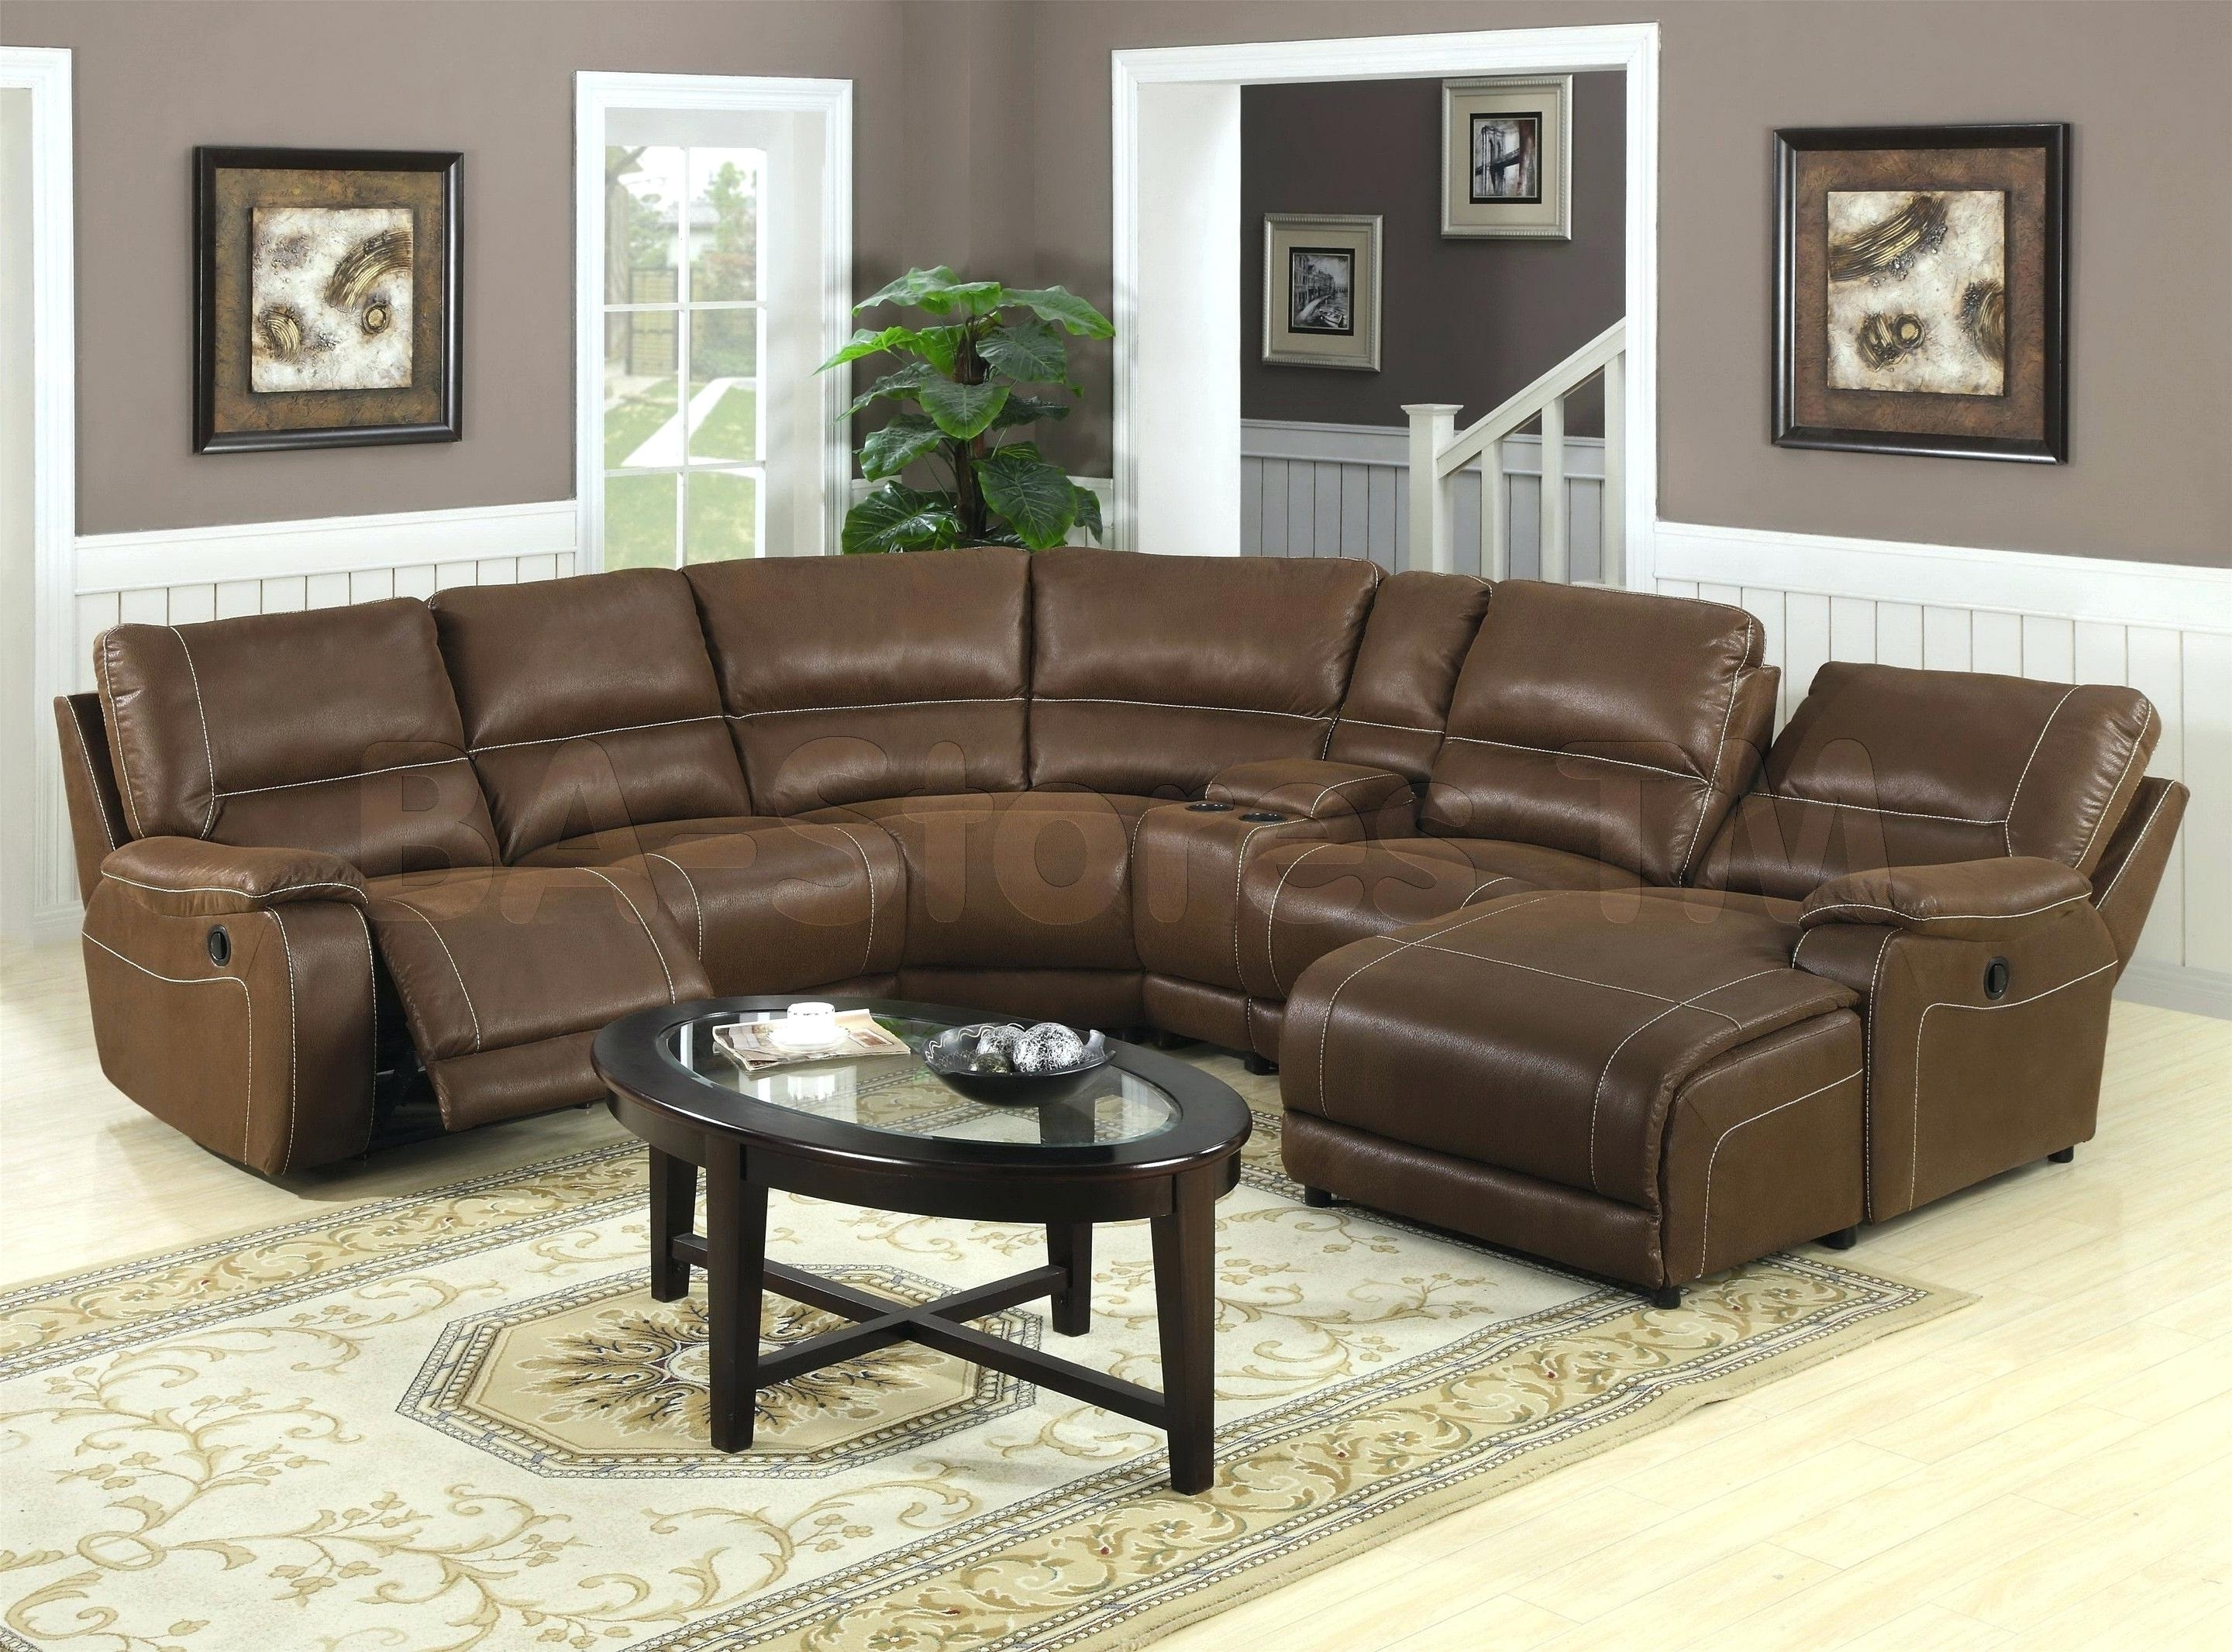 2018 Cheap Furniture Okc Sectional Sofa Sofas Fresh Photos – 4Parkar Intended For Okc Sectional Sofas (View 1 of 20)